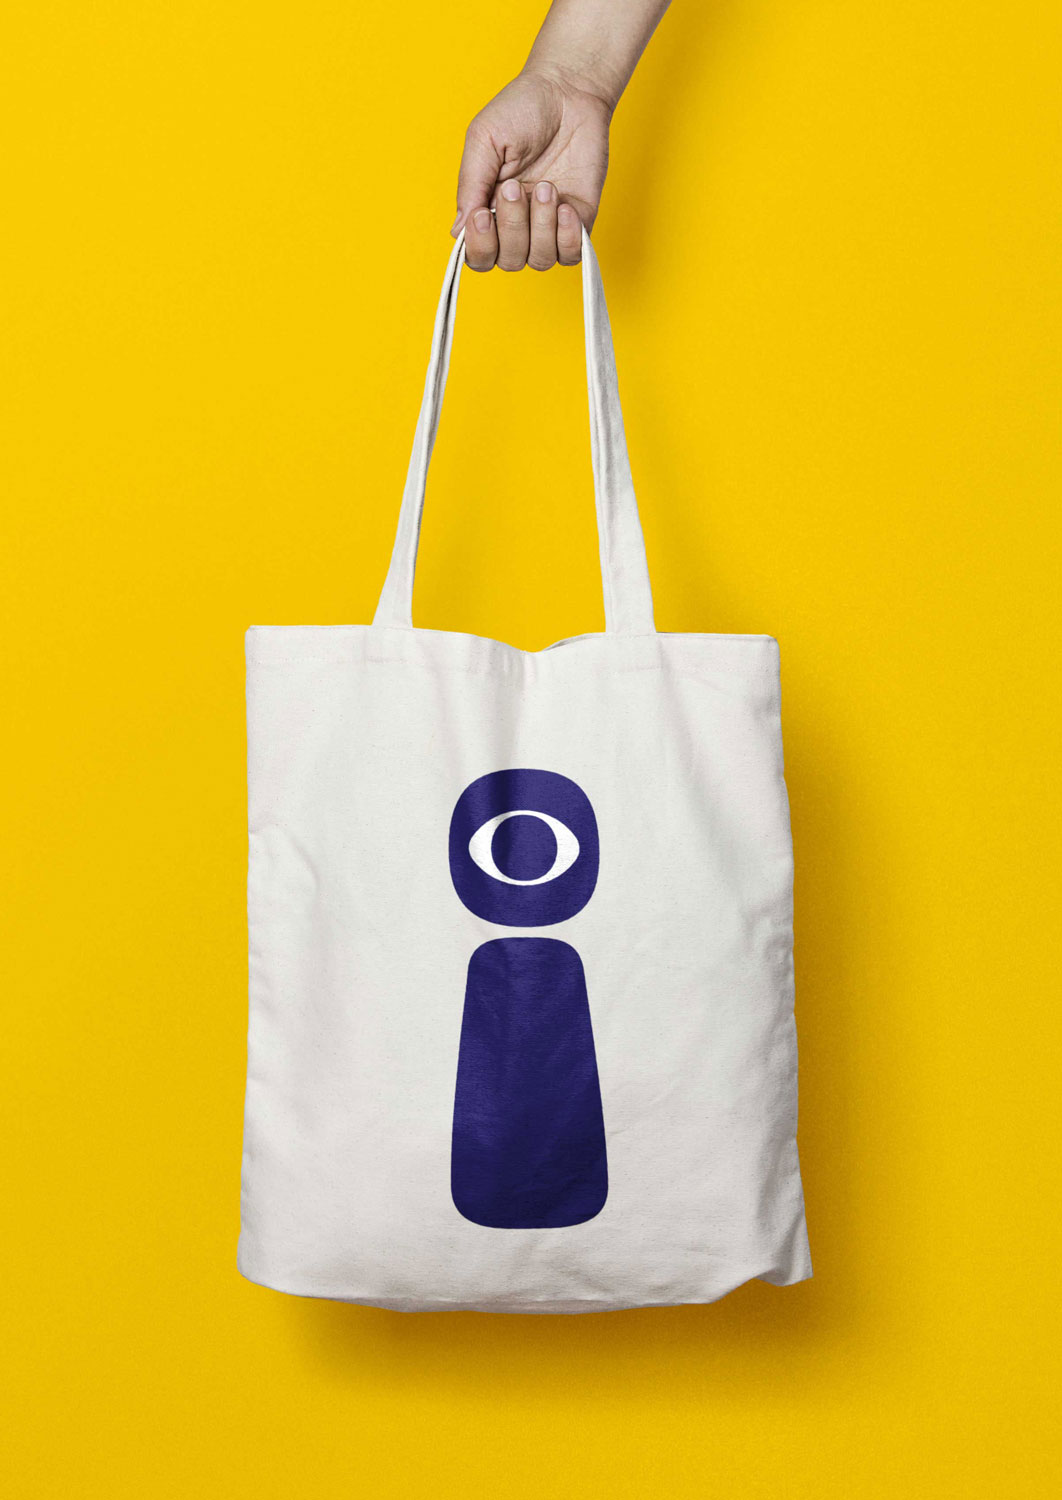 Identity design for EYEYAH! tote bag with secondary logo application.